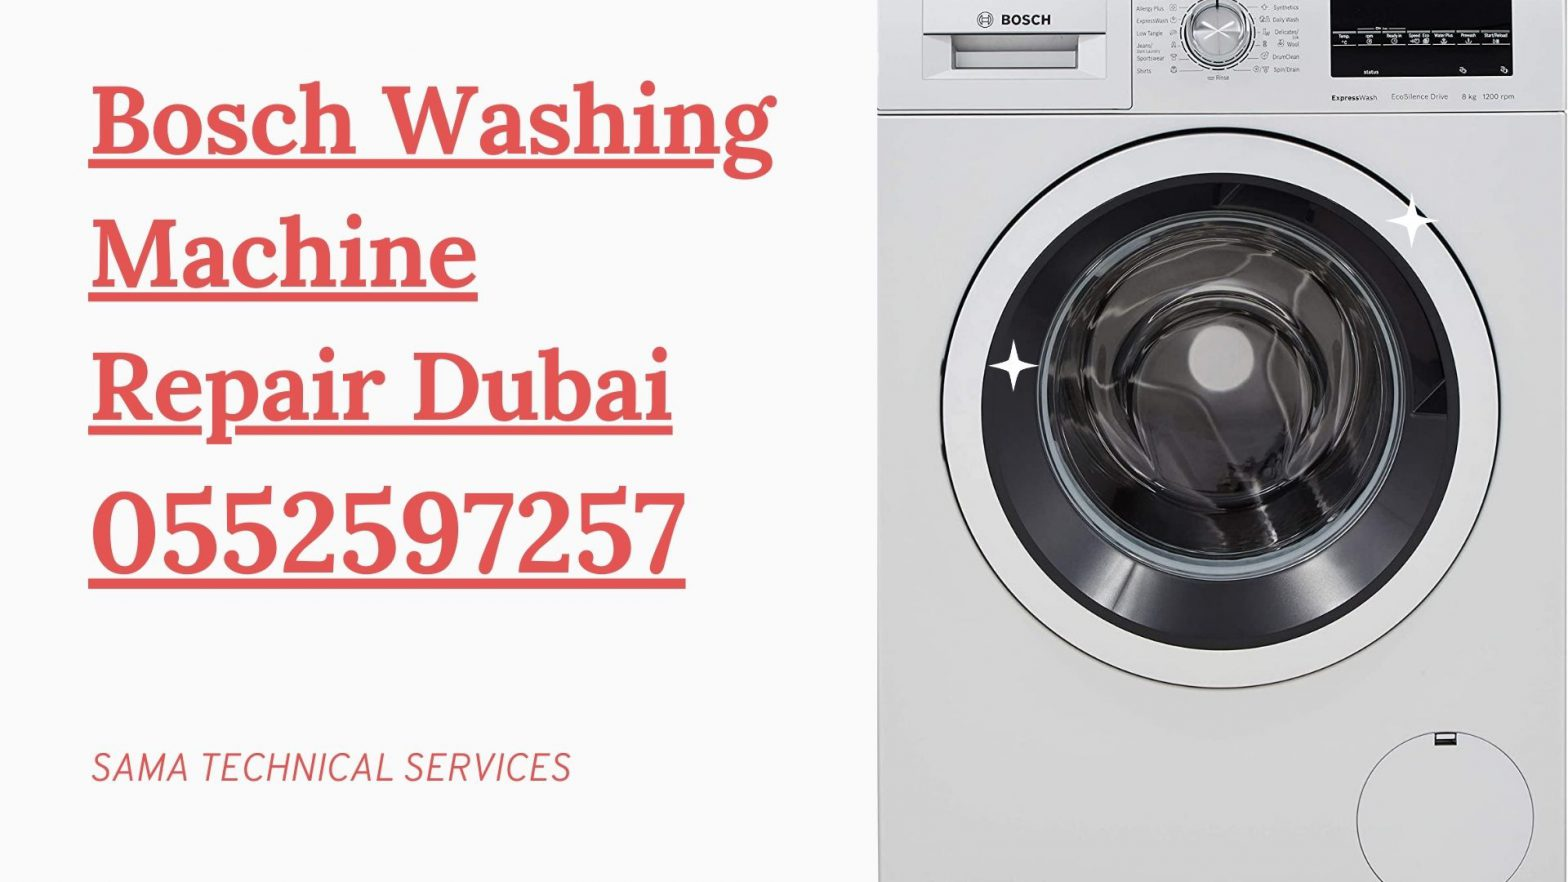 Bosch Washing machine repair Dubai